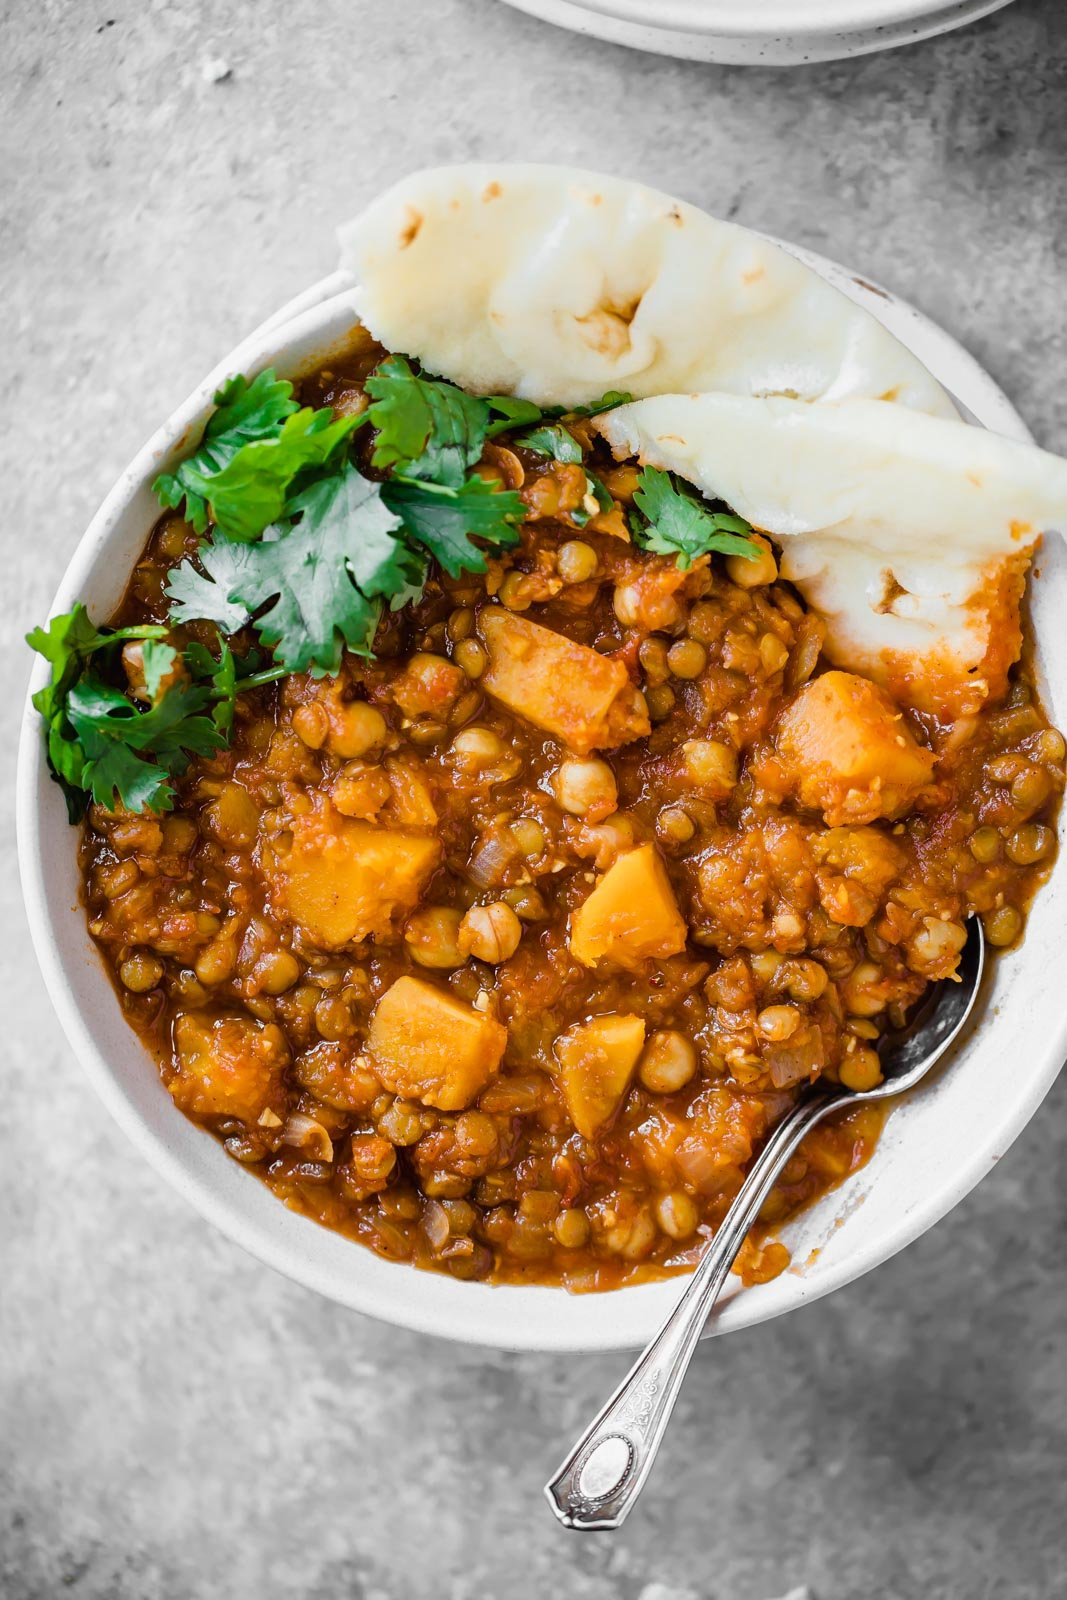 A healthy lentil moroccan stew made with chickpeas, butternut squash, and lentils. You'll love this filling vegetarian meal.